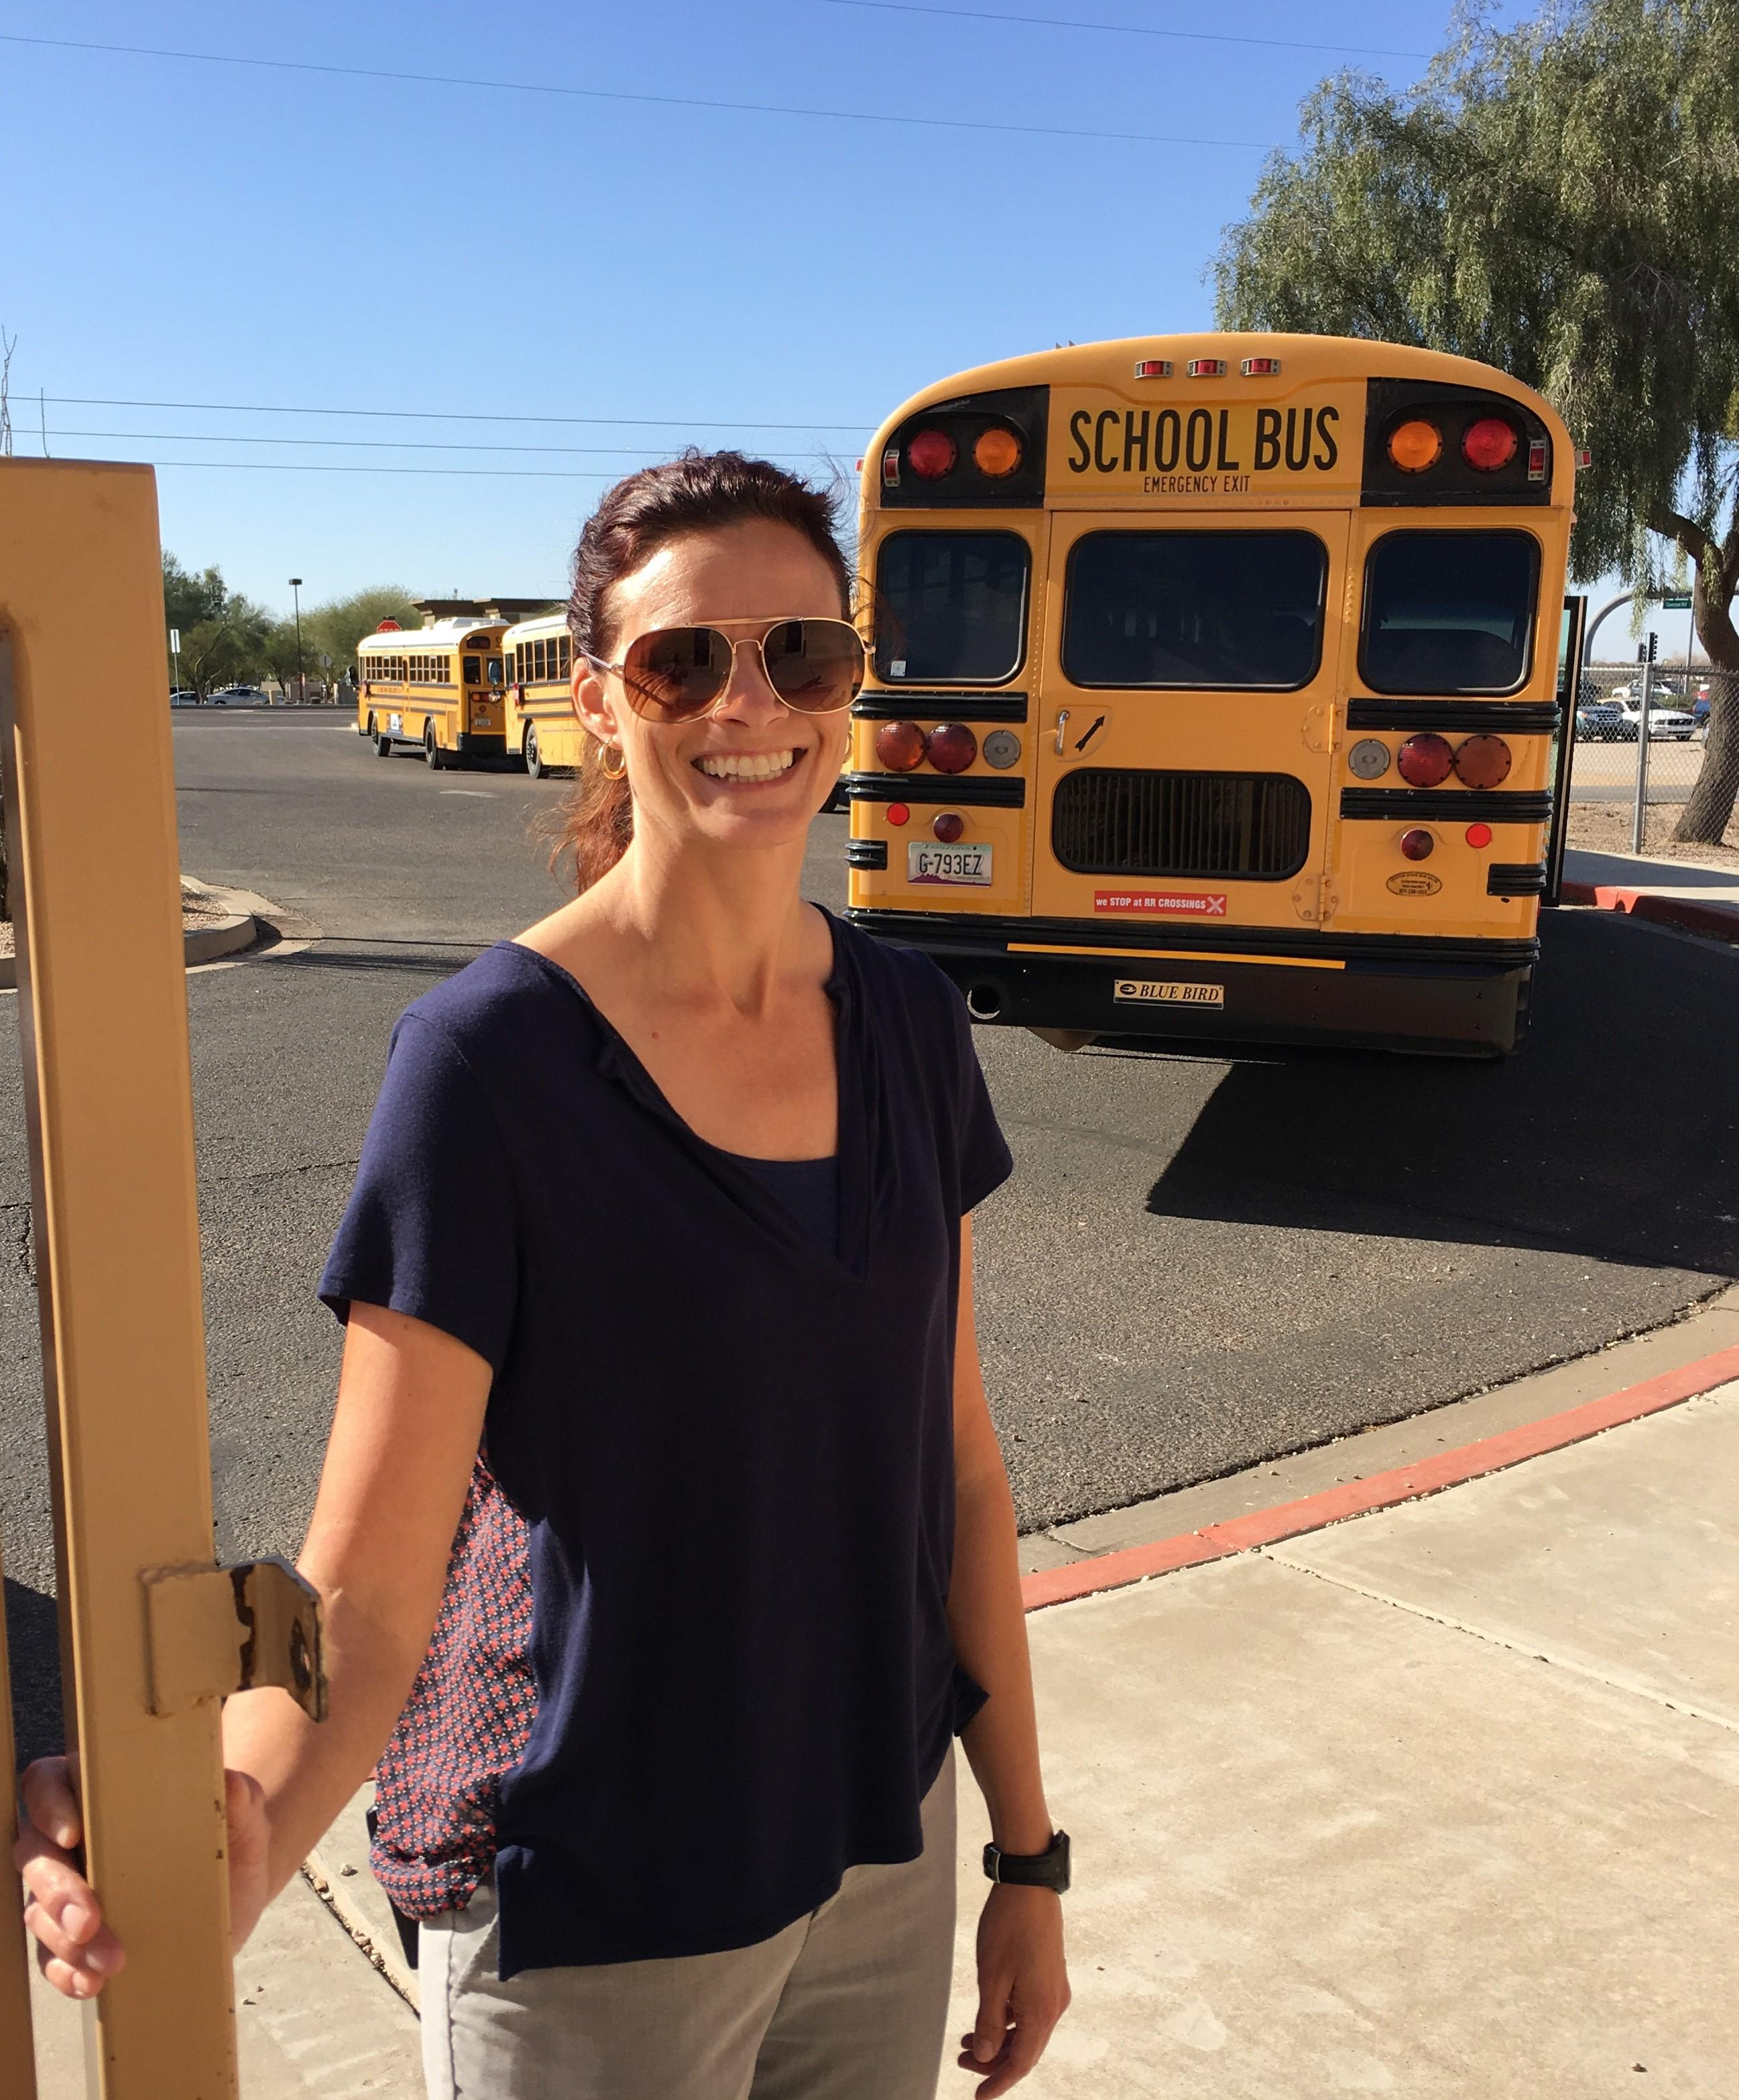 Counselor greeting students by the school bus